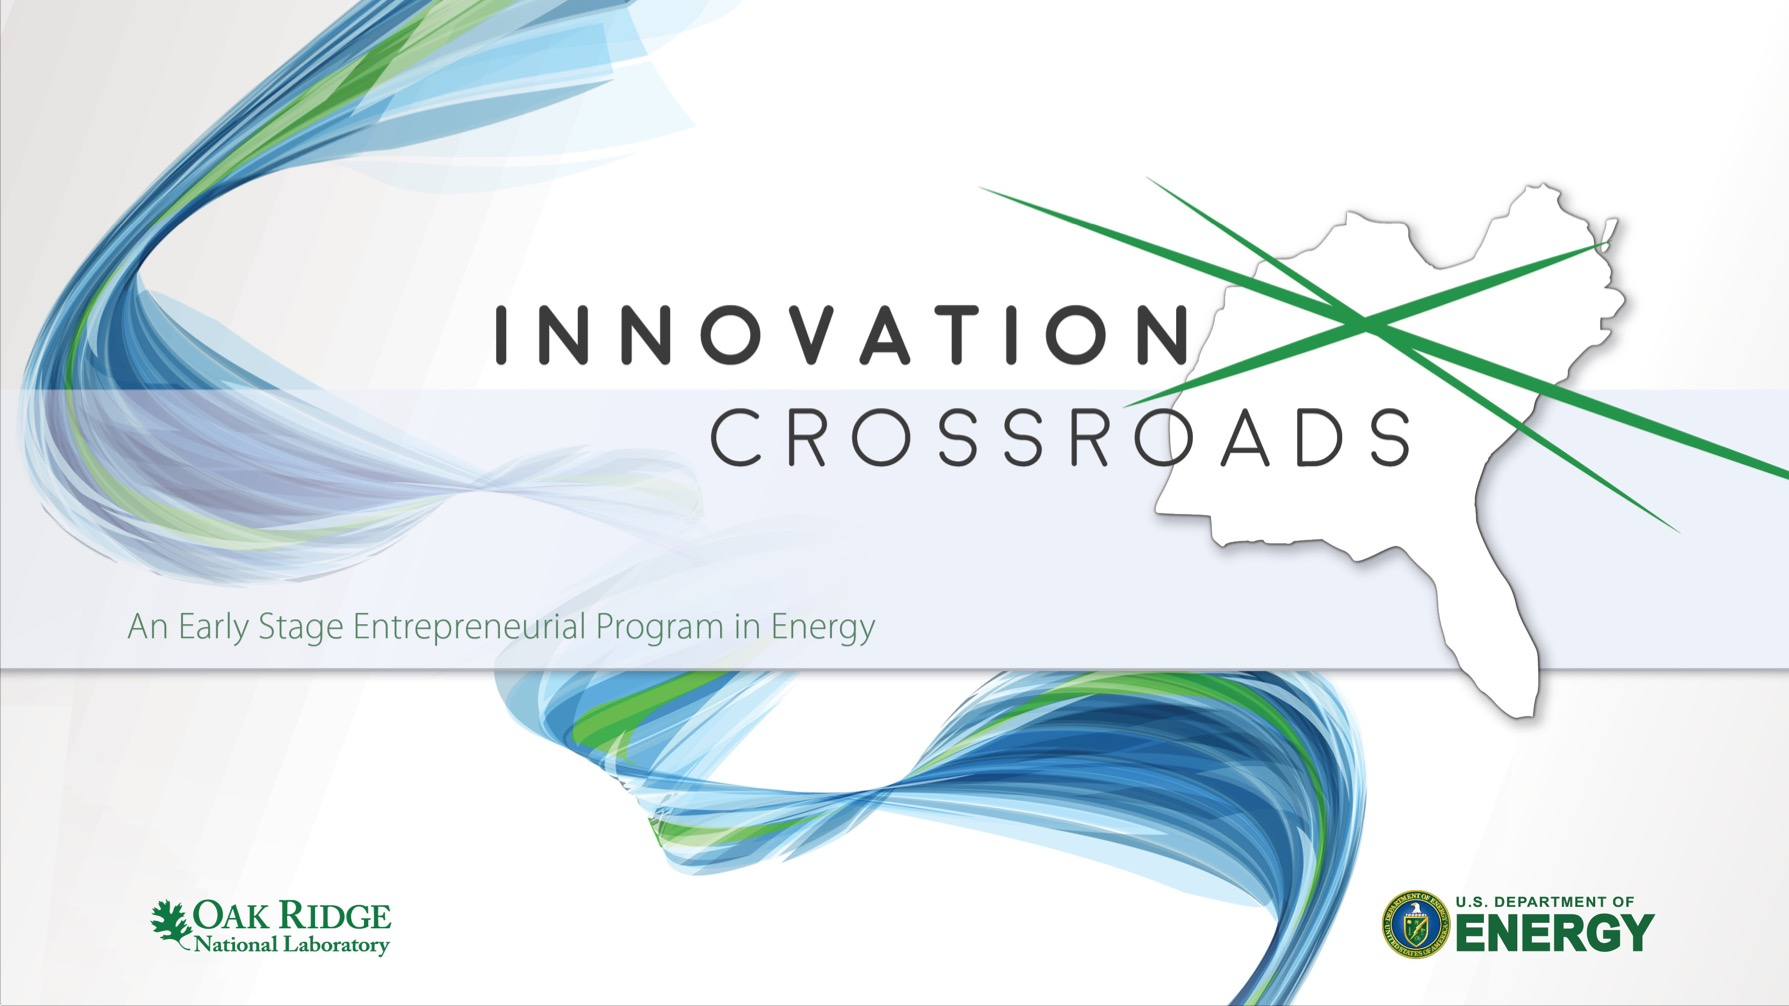 Innovation Crossroads Webinar Presentation